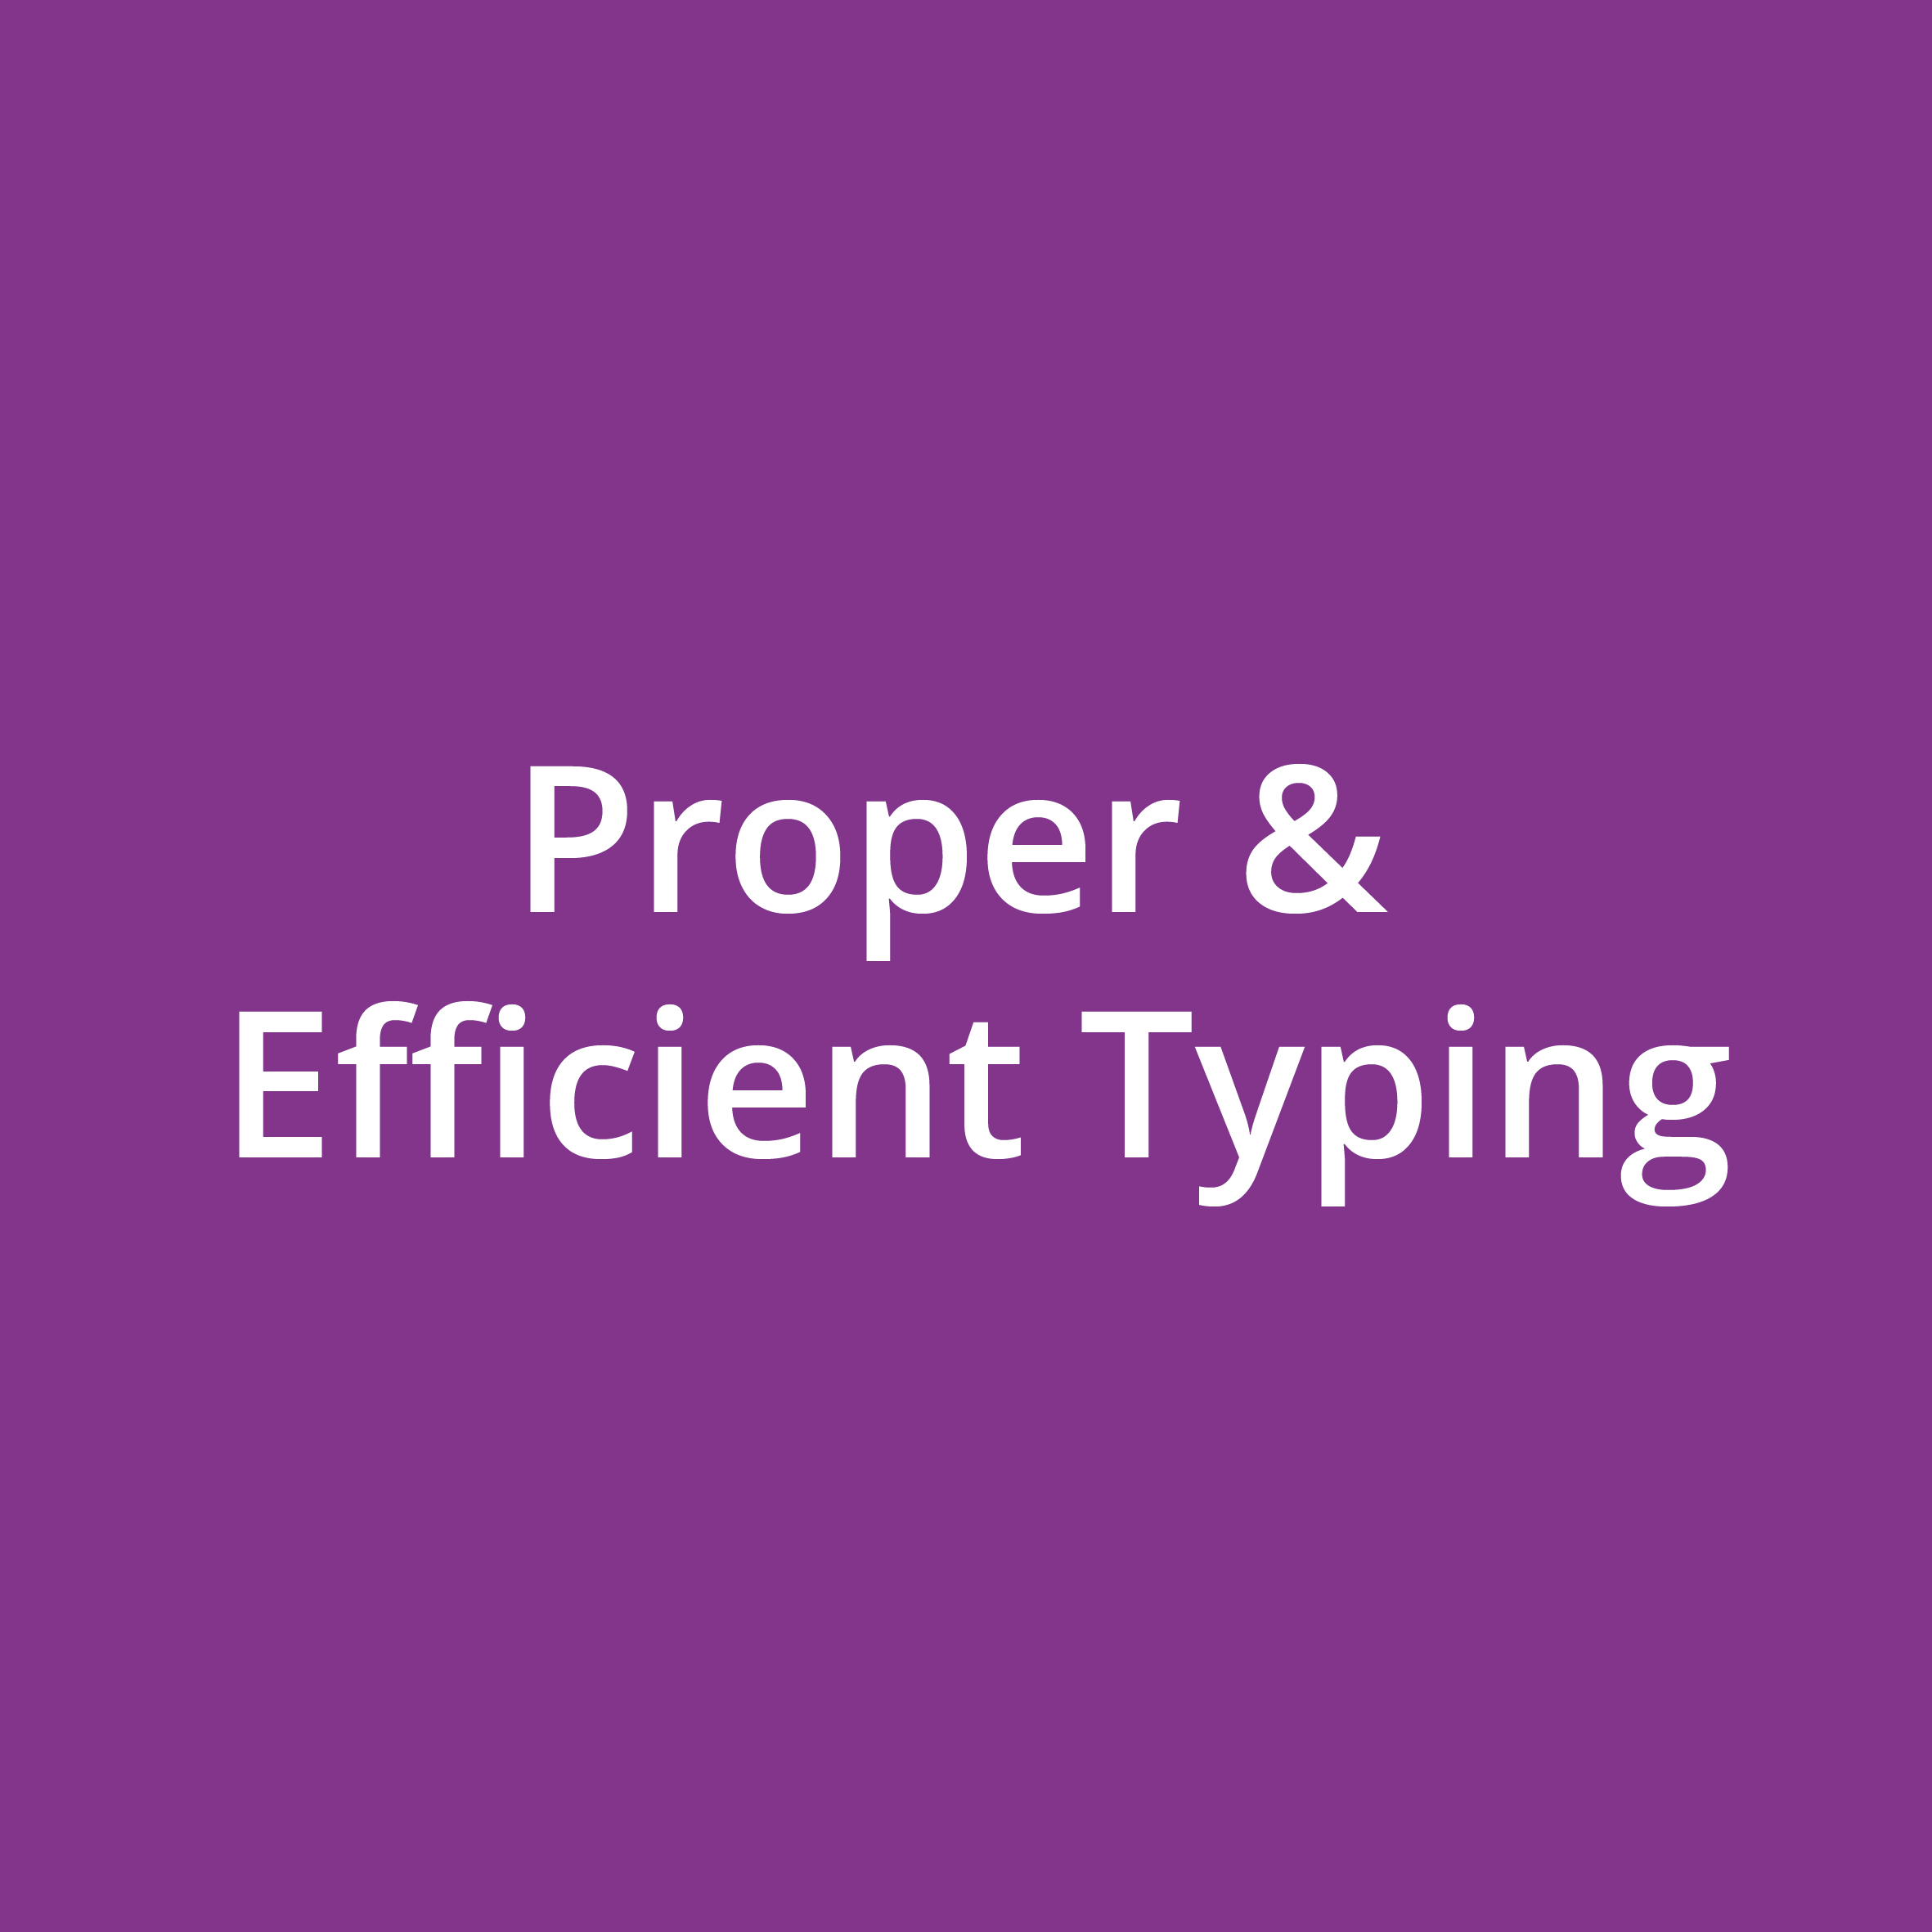 Proper & Efficient Typing